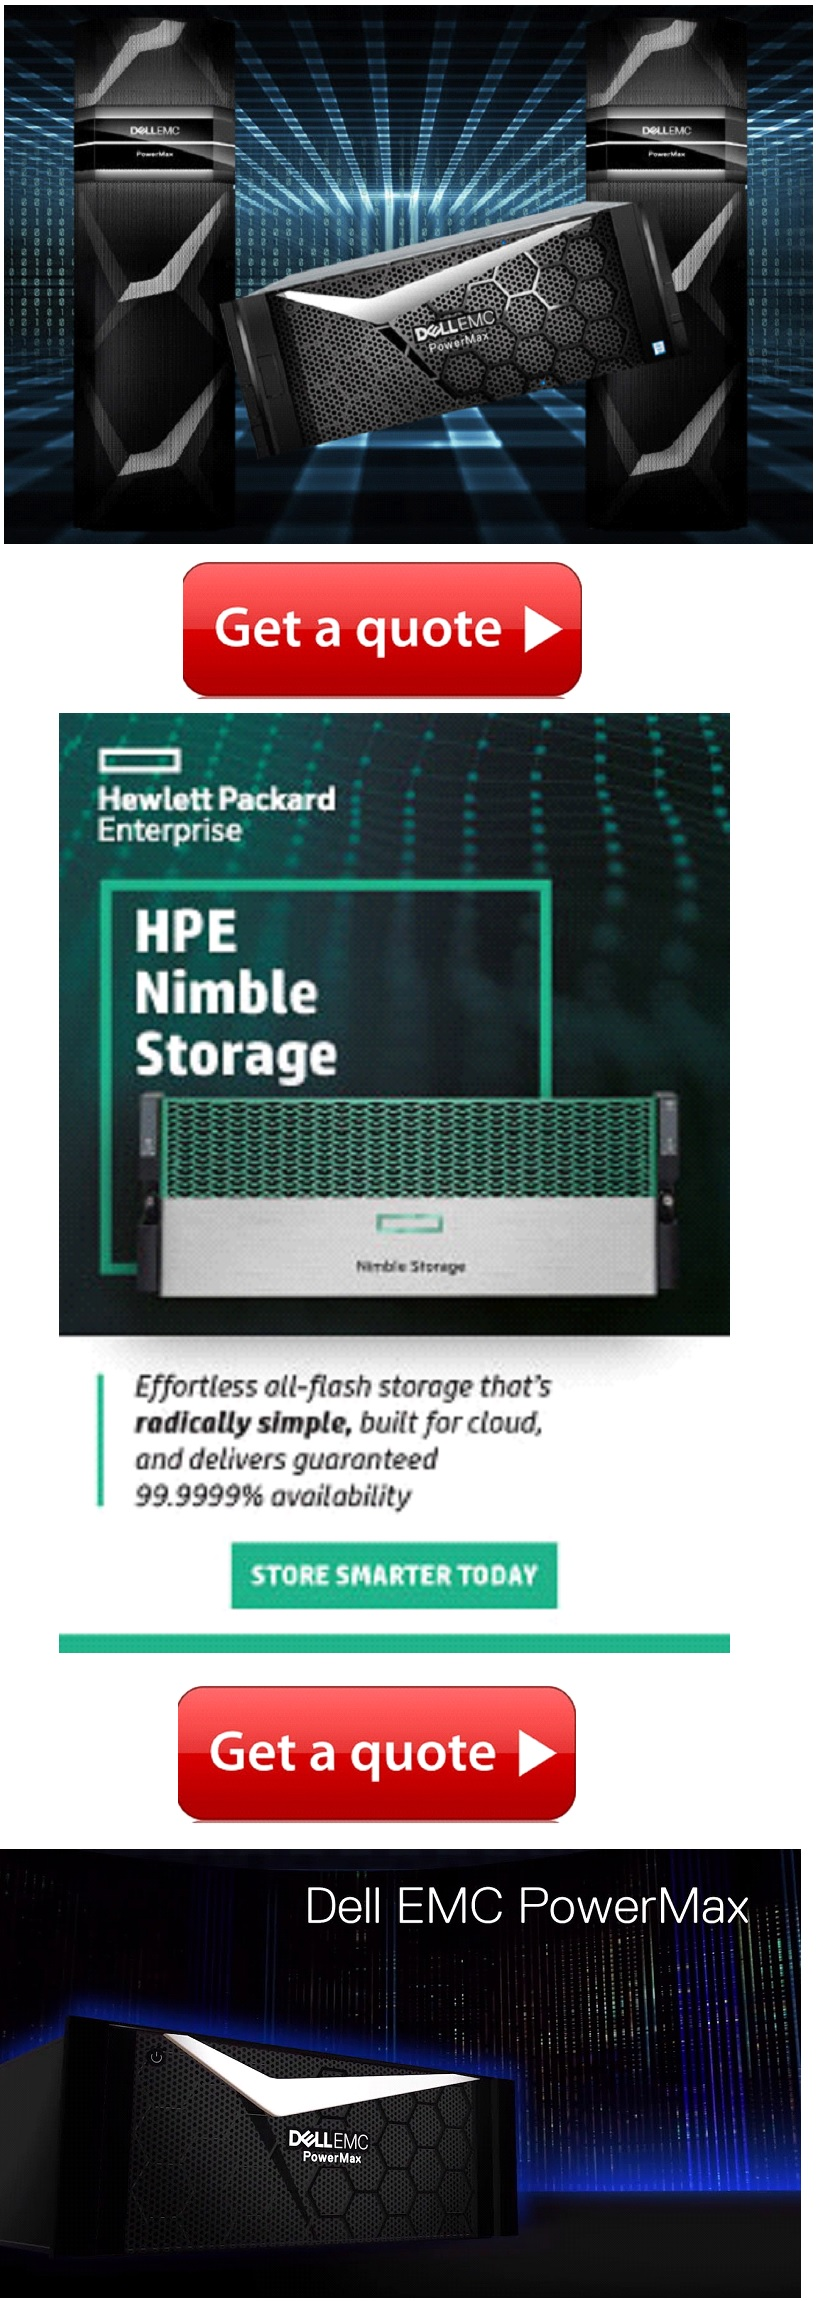 Buy HPE Nimble Storage and drives